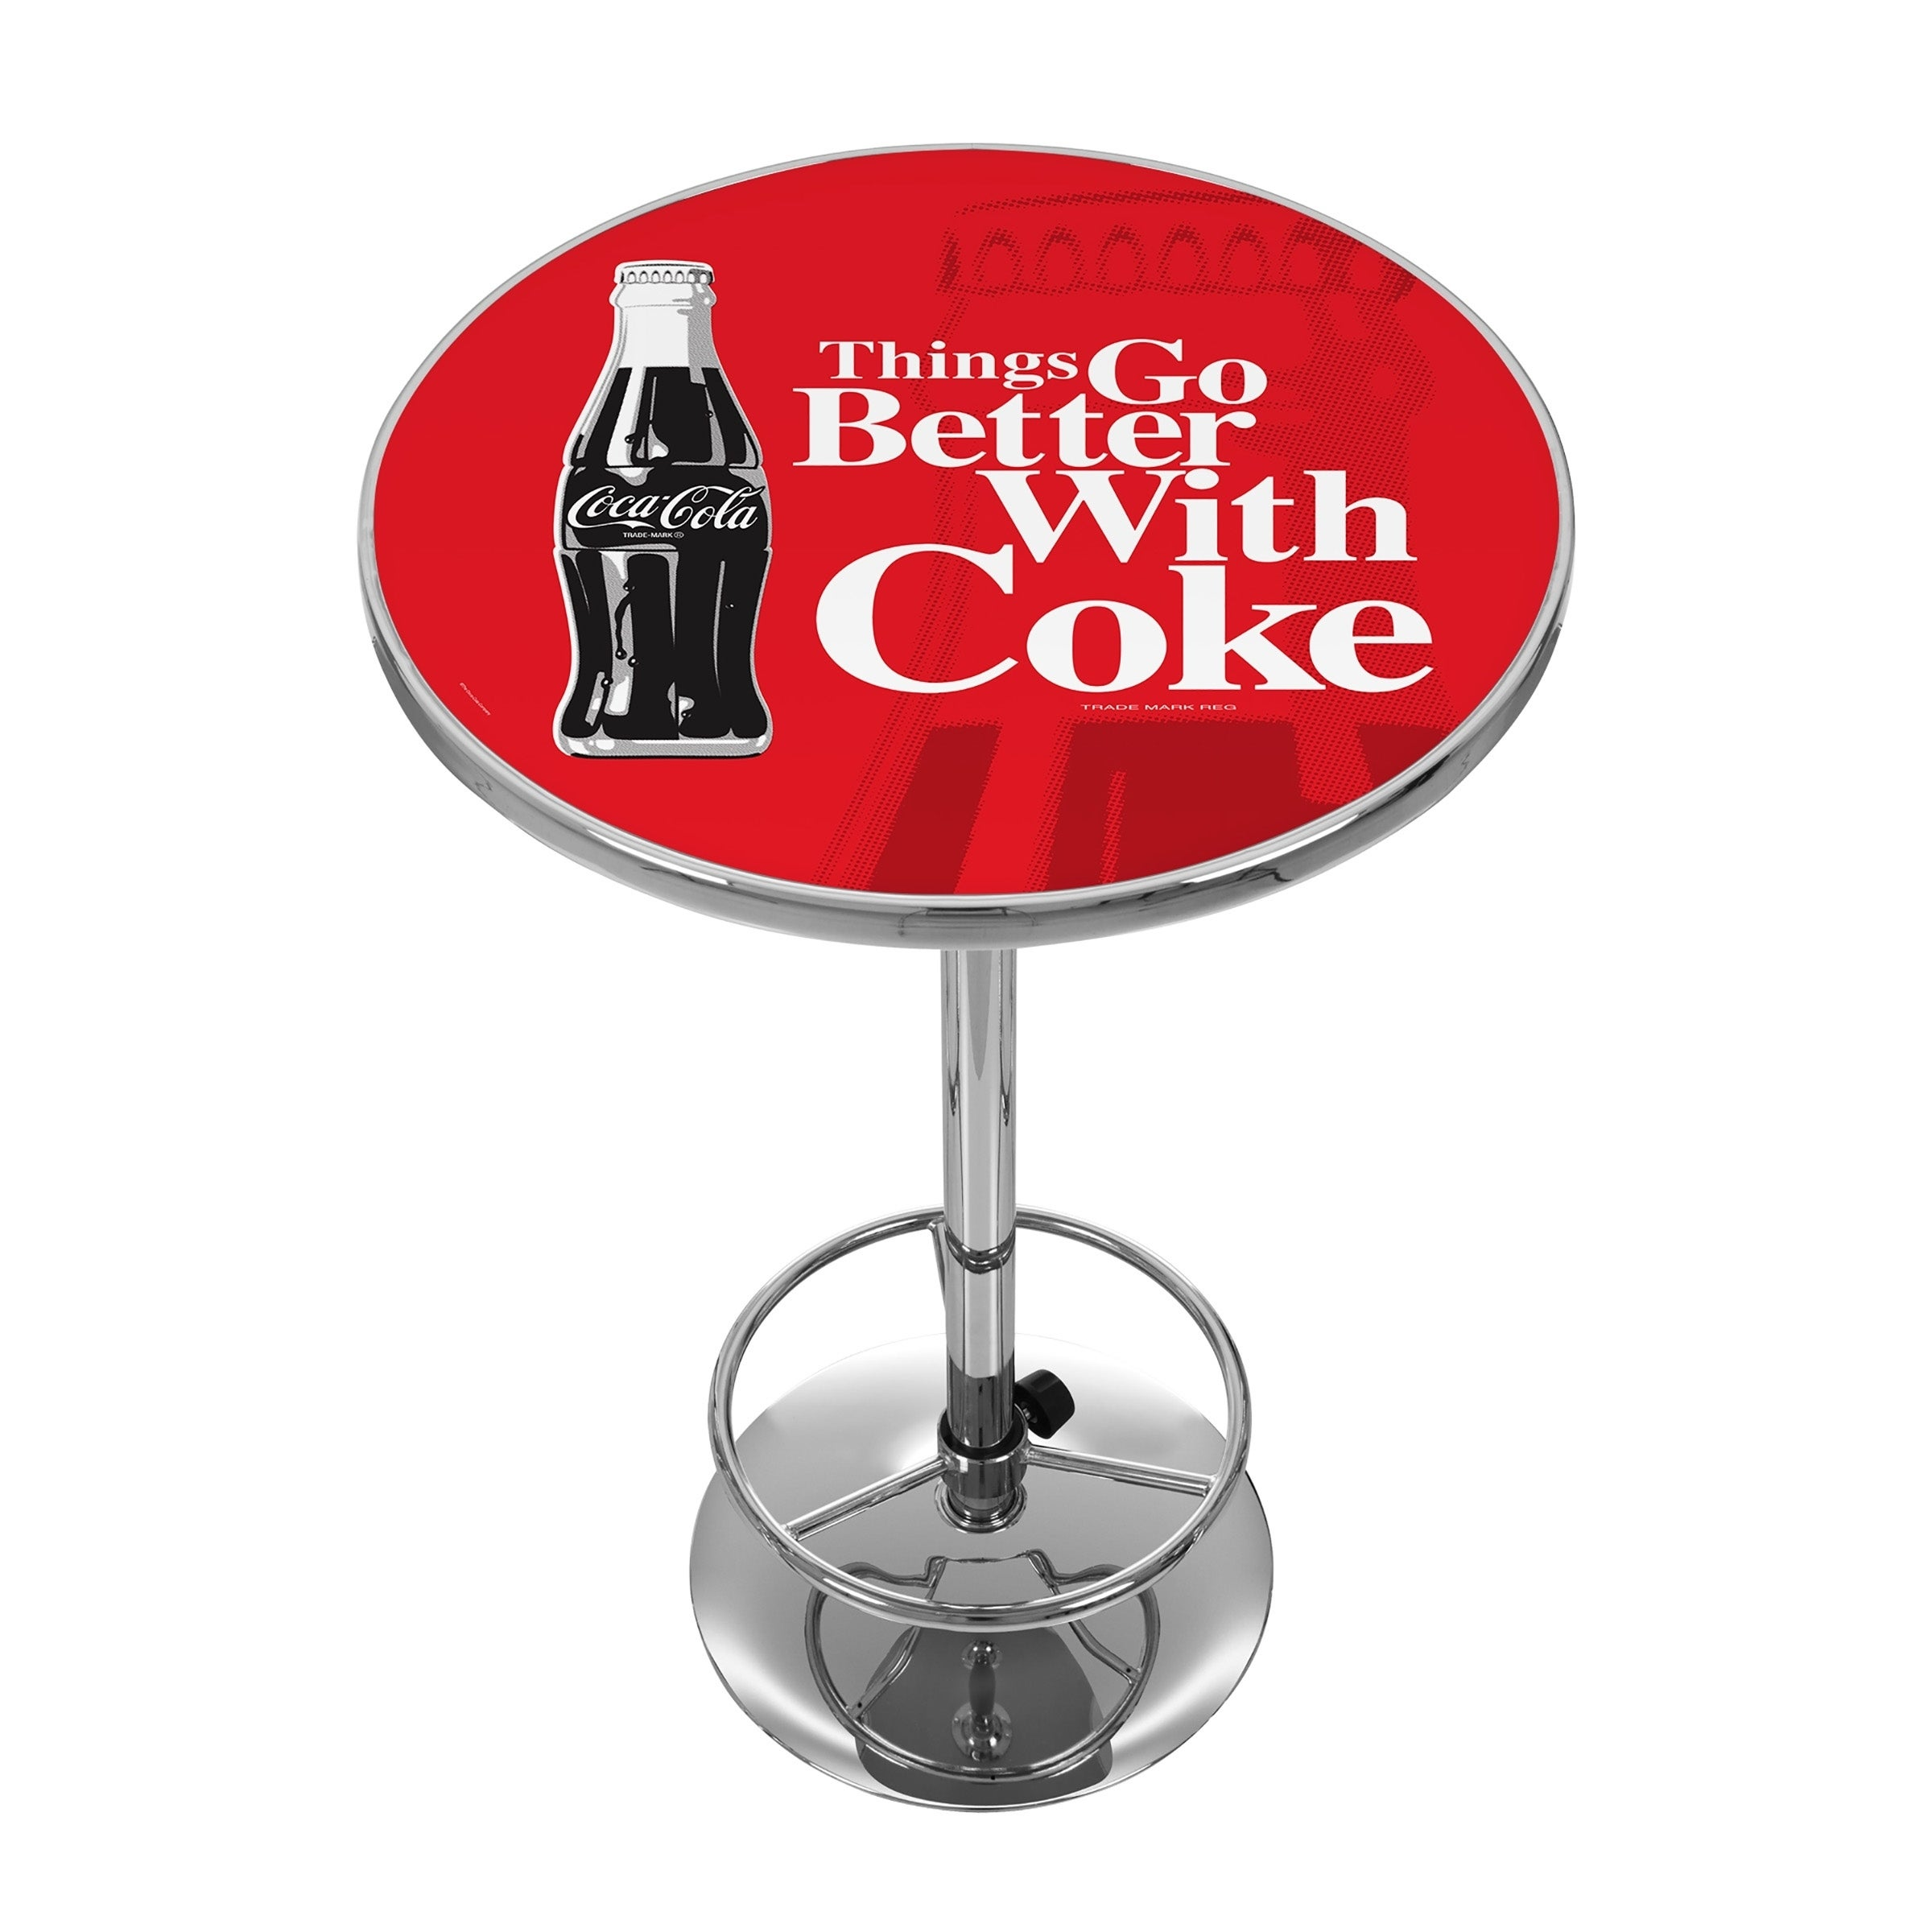 Coke Chrome Pub Table - Coke Bottle Art